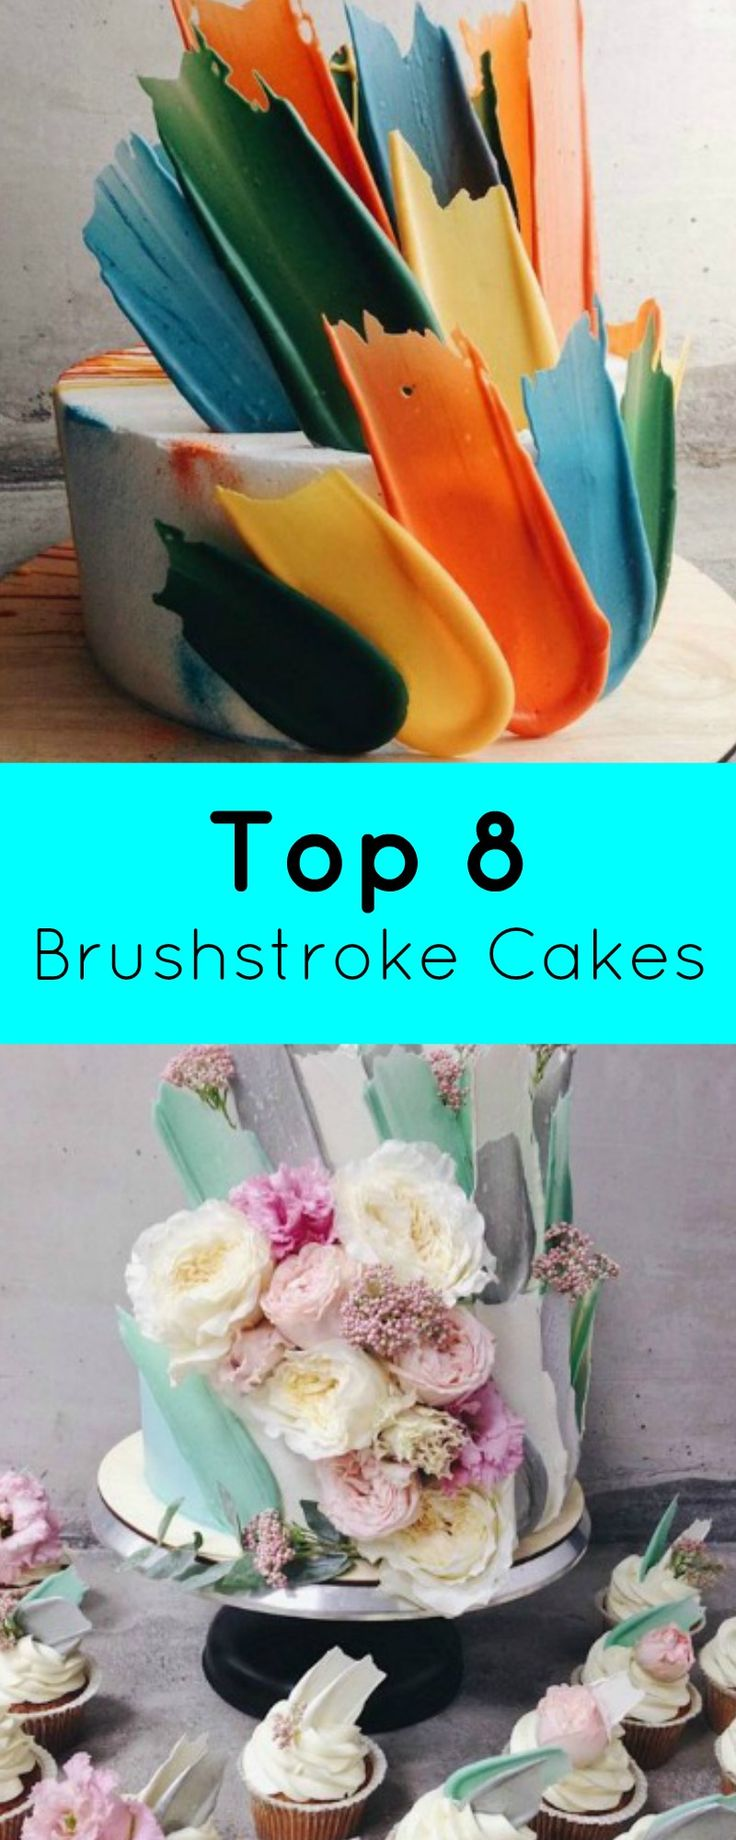 Top 8 Brushstroke Cakes | I'm sure that you have all seen the cakes getting around with beautiful chocolate shards that resemble paint brush strokes? | http://magnificentmouthfuls.com.au/2017/04/10/top-8-brushstroke-cakes/